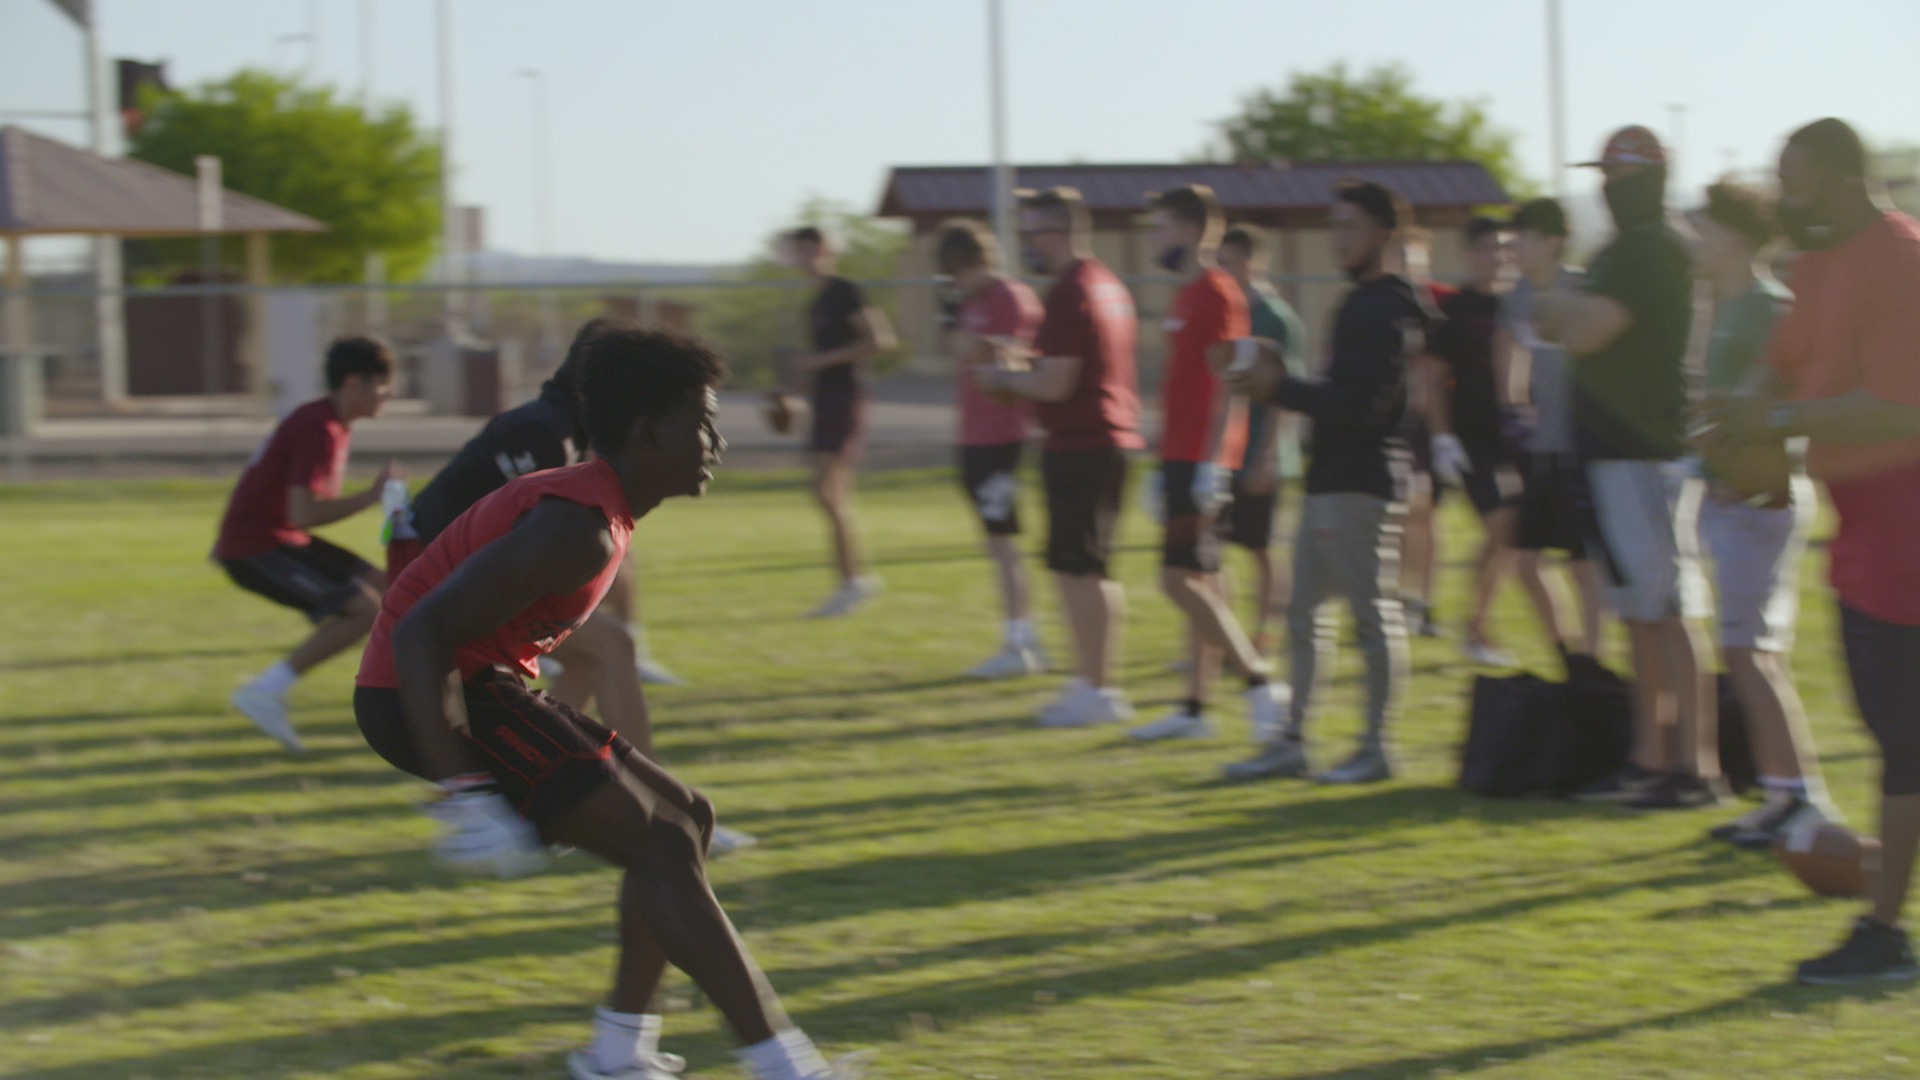 Walden Grove High School football at practice May 2021.